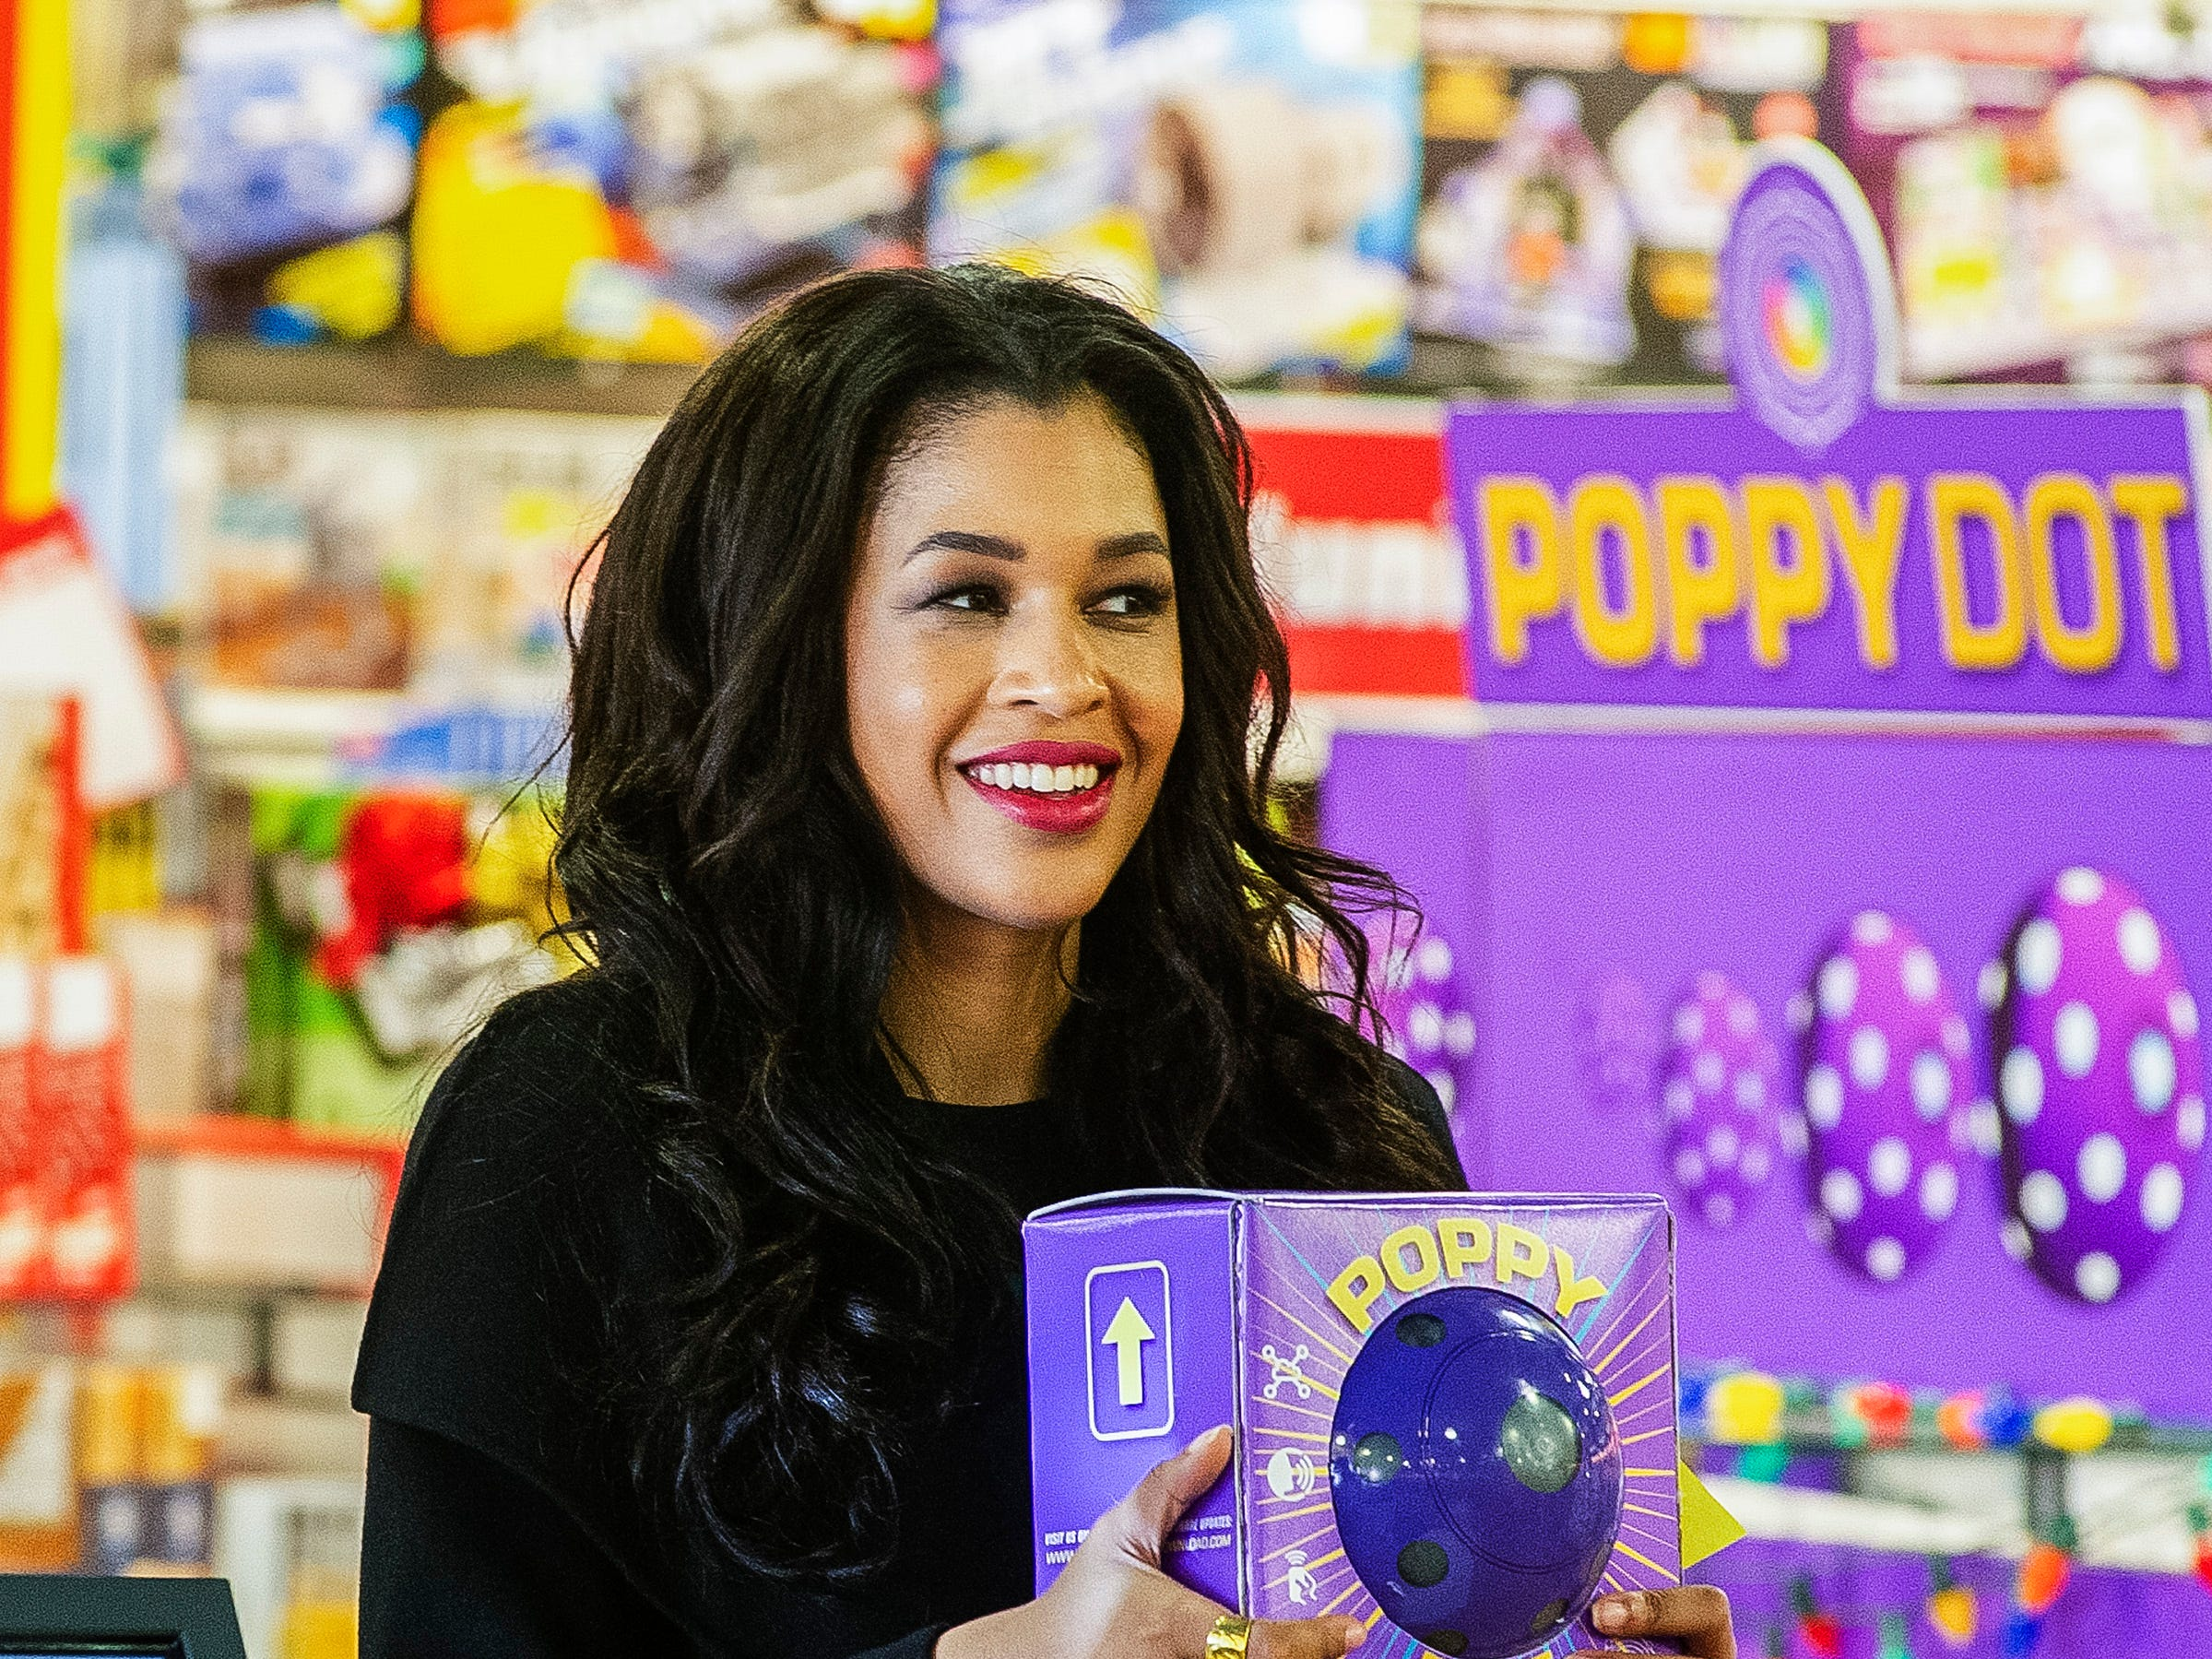 """""""The Truth About Christmas"""" (Freeform, Nov. 25, 9 EST/PST): Jillian (Kali Hawk) has an unusual run-in with a store Santa, which forces her to tell the truth. It's a change that causes issues when she meets the family of her boyfriend, George (Damon Dayoub)."""